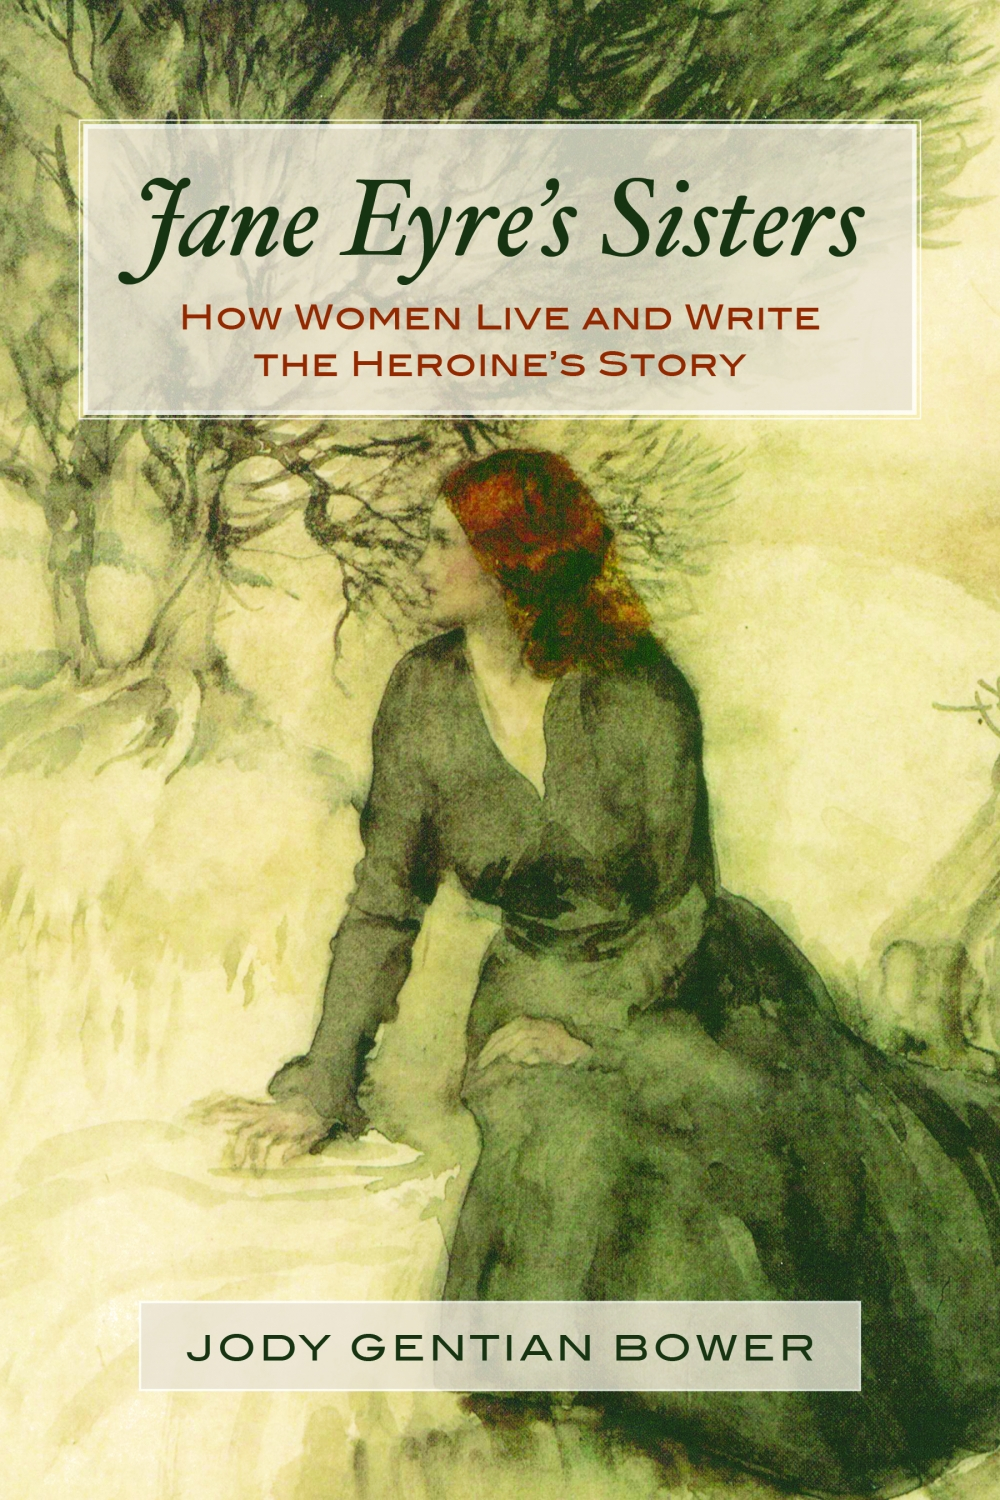 literary anlysis of jane eyre This introduction to and analysis of jane eyre by charlotte brontë (1847) is excerpted from life and works of the sisters brontë by mary a ward, a 19th-century british novelist and literary critic.